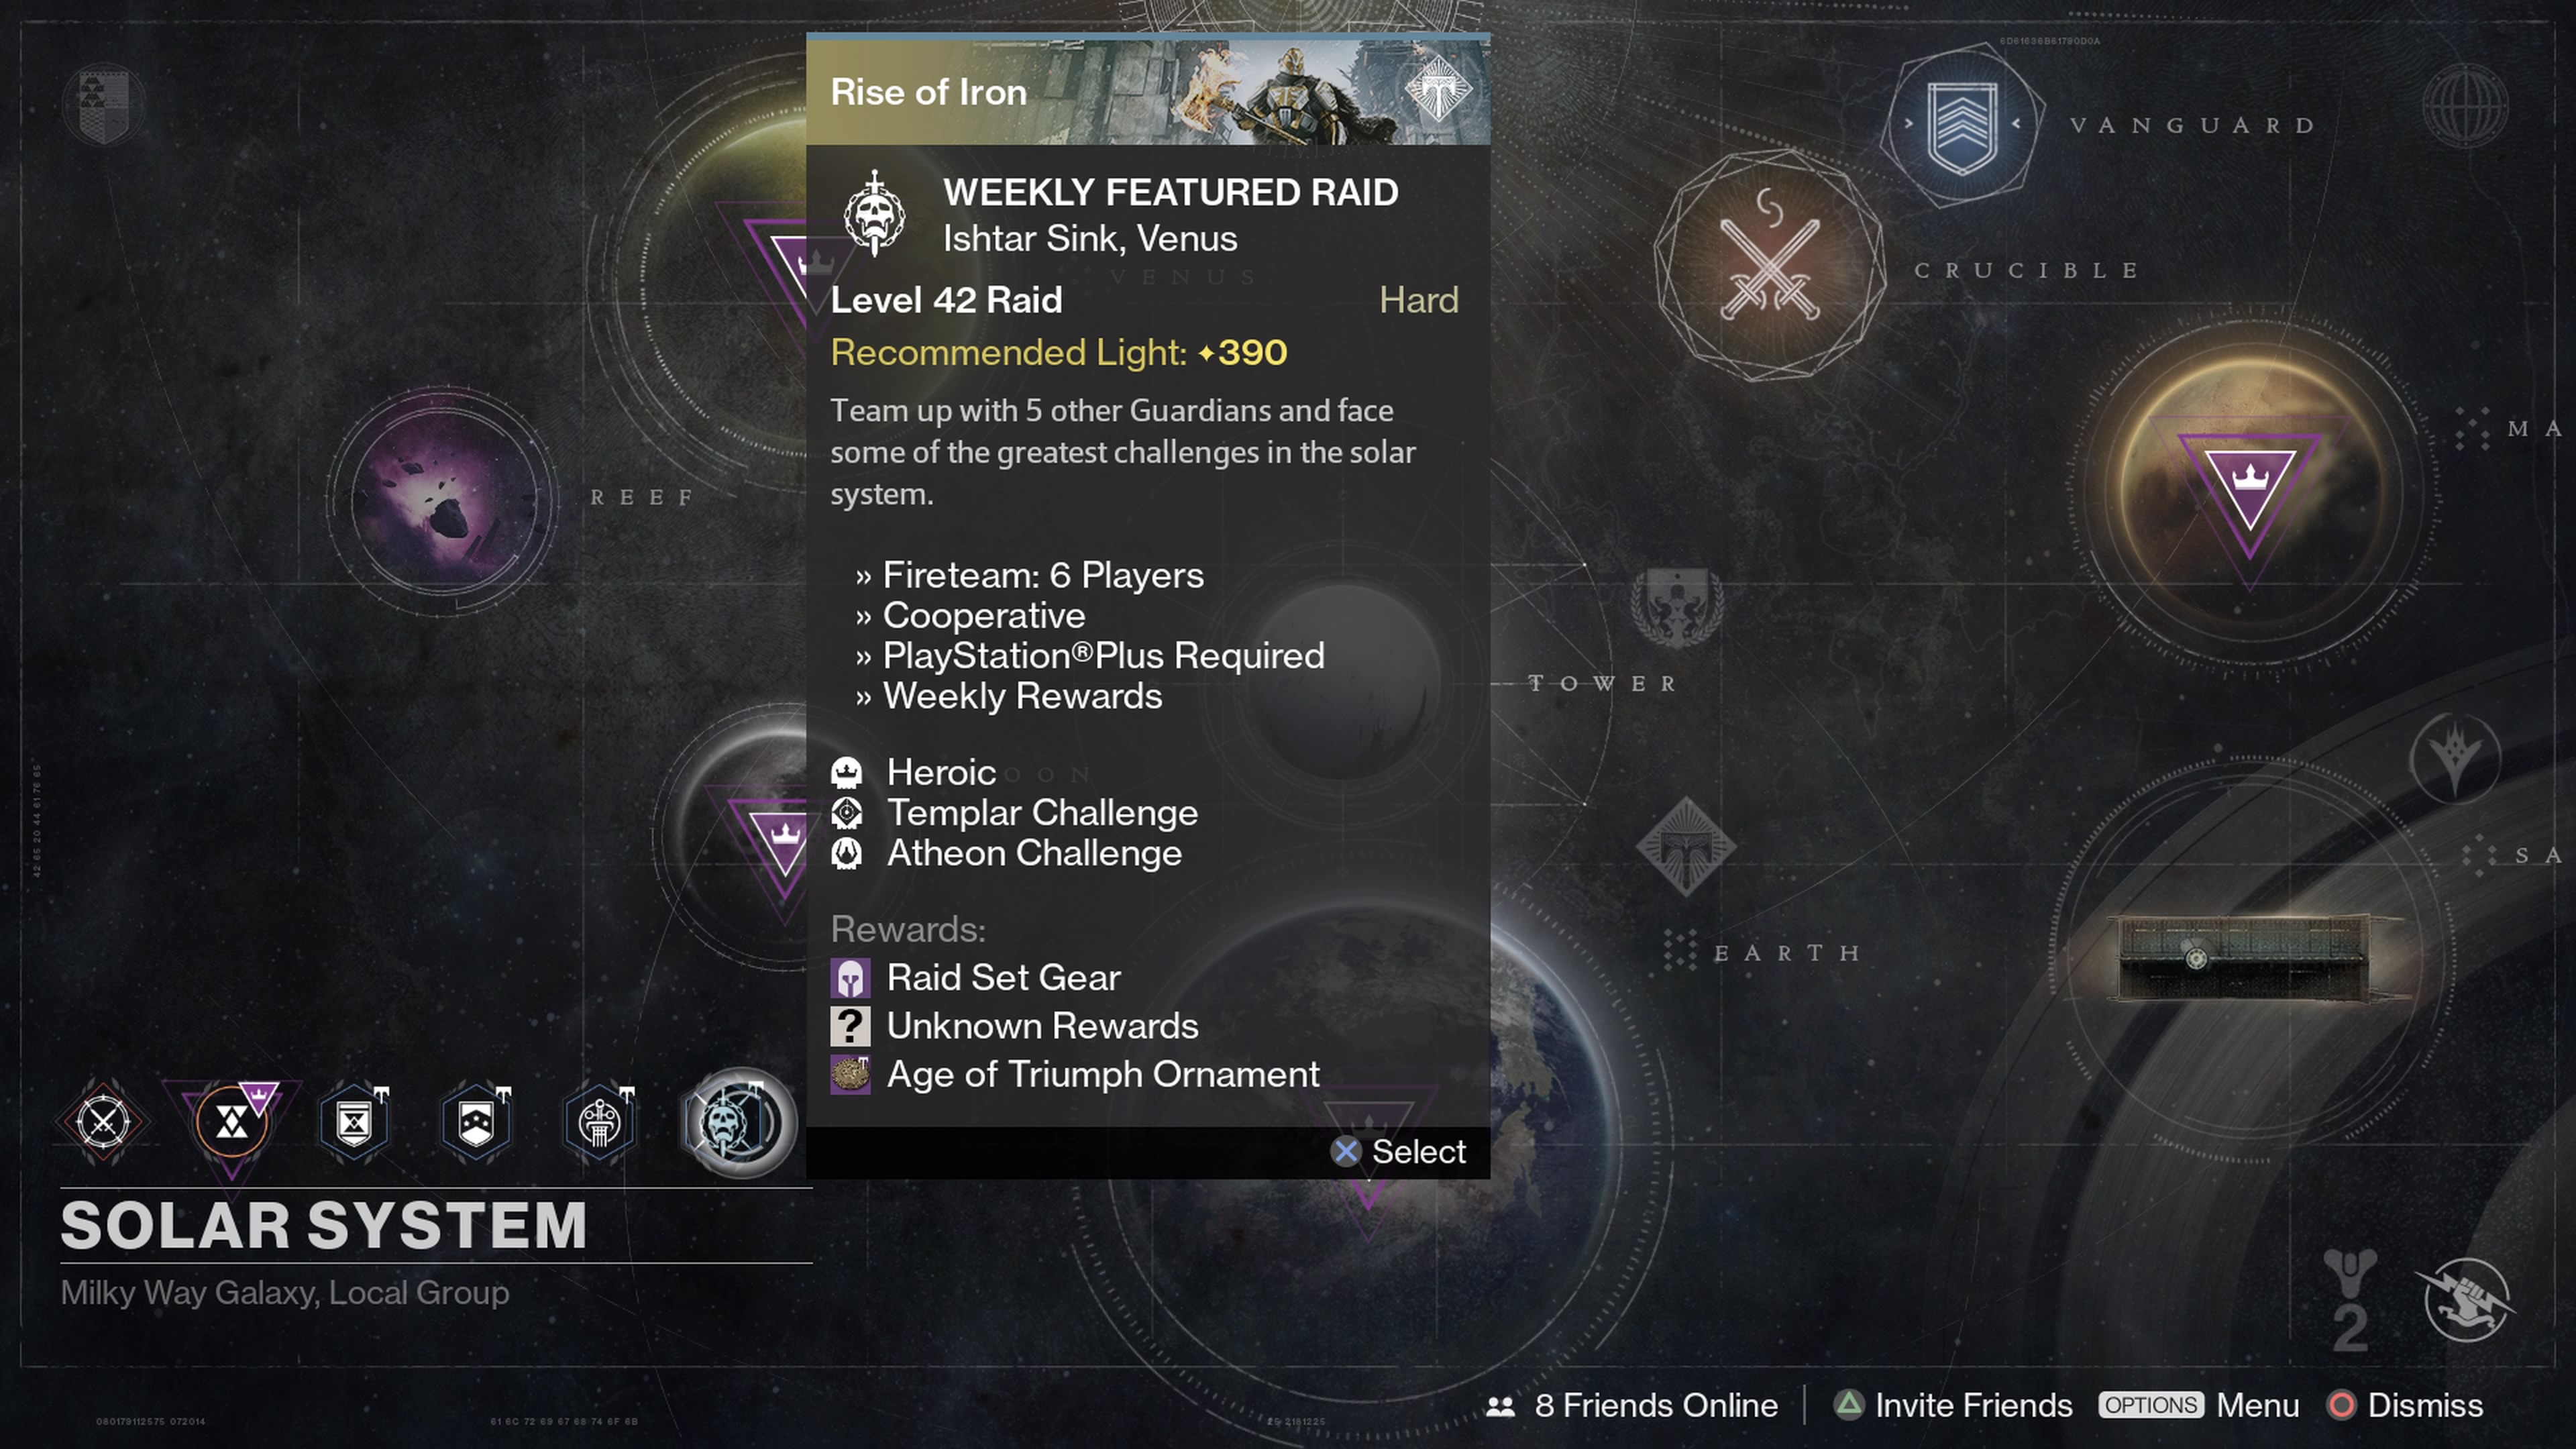 Complete the Weekly Featured Raid with five friends to complete this step